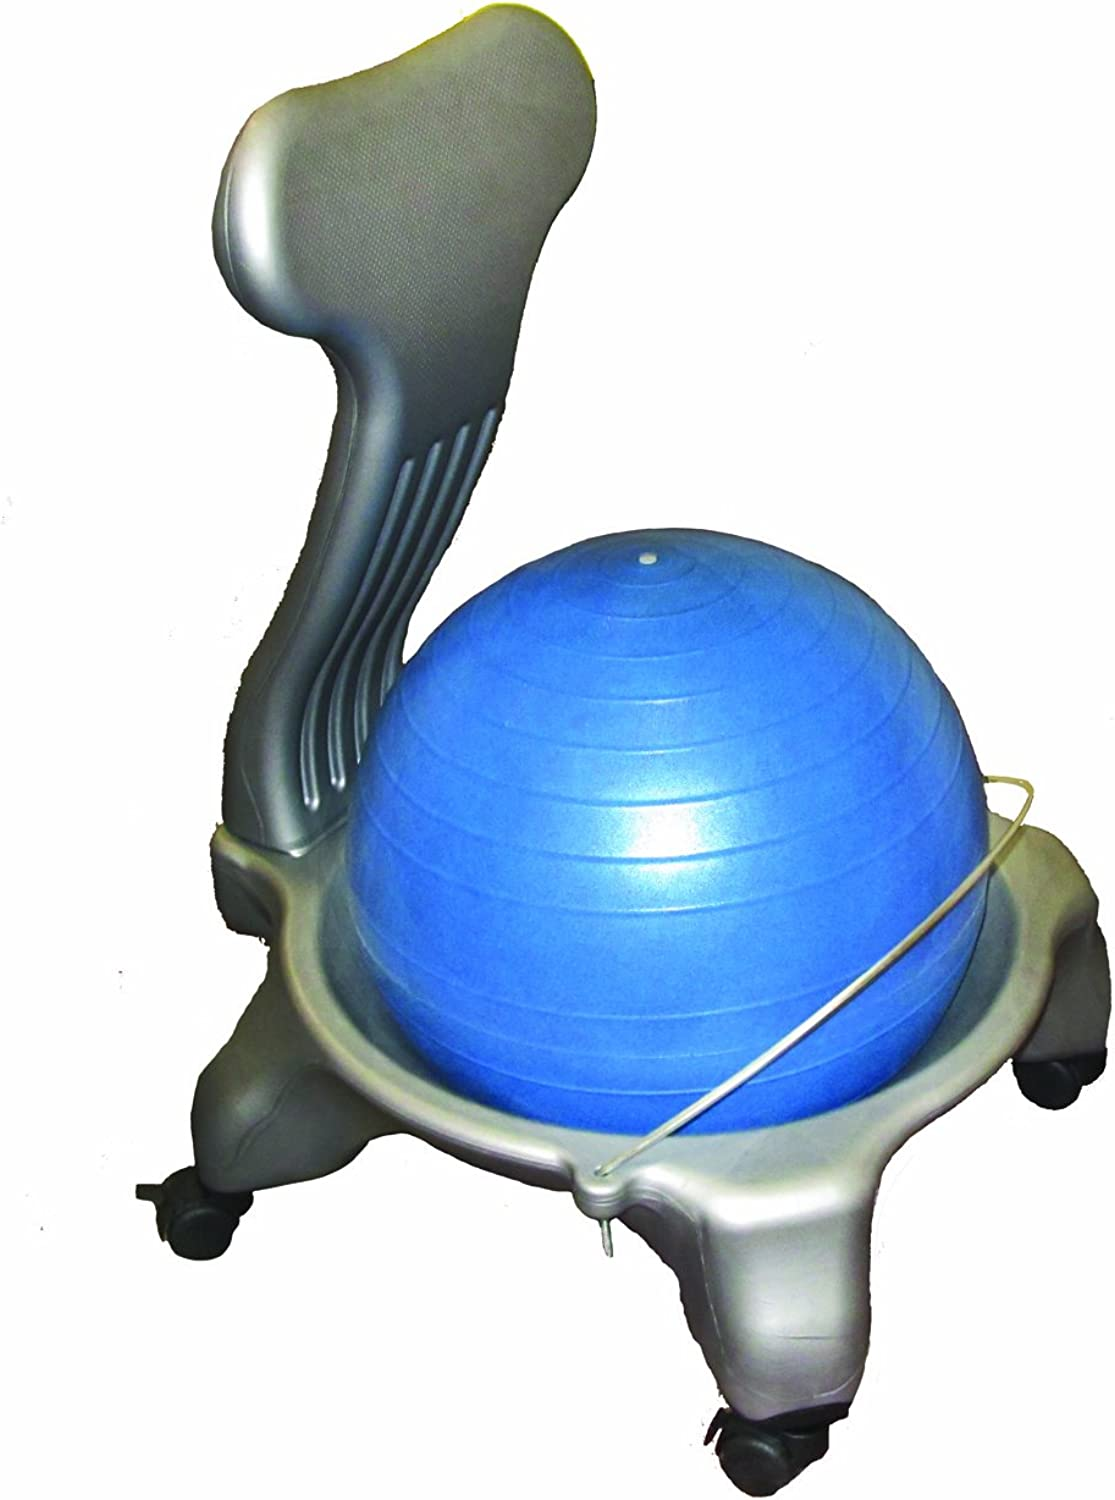 WePlay Educational Products - Ball Chair, Large (48-52cm Diameter Ball)